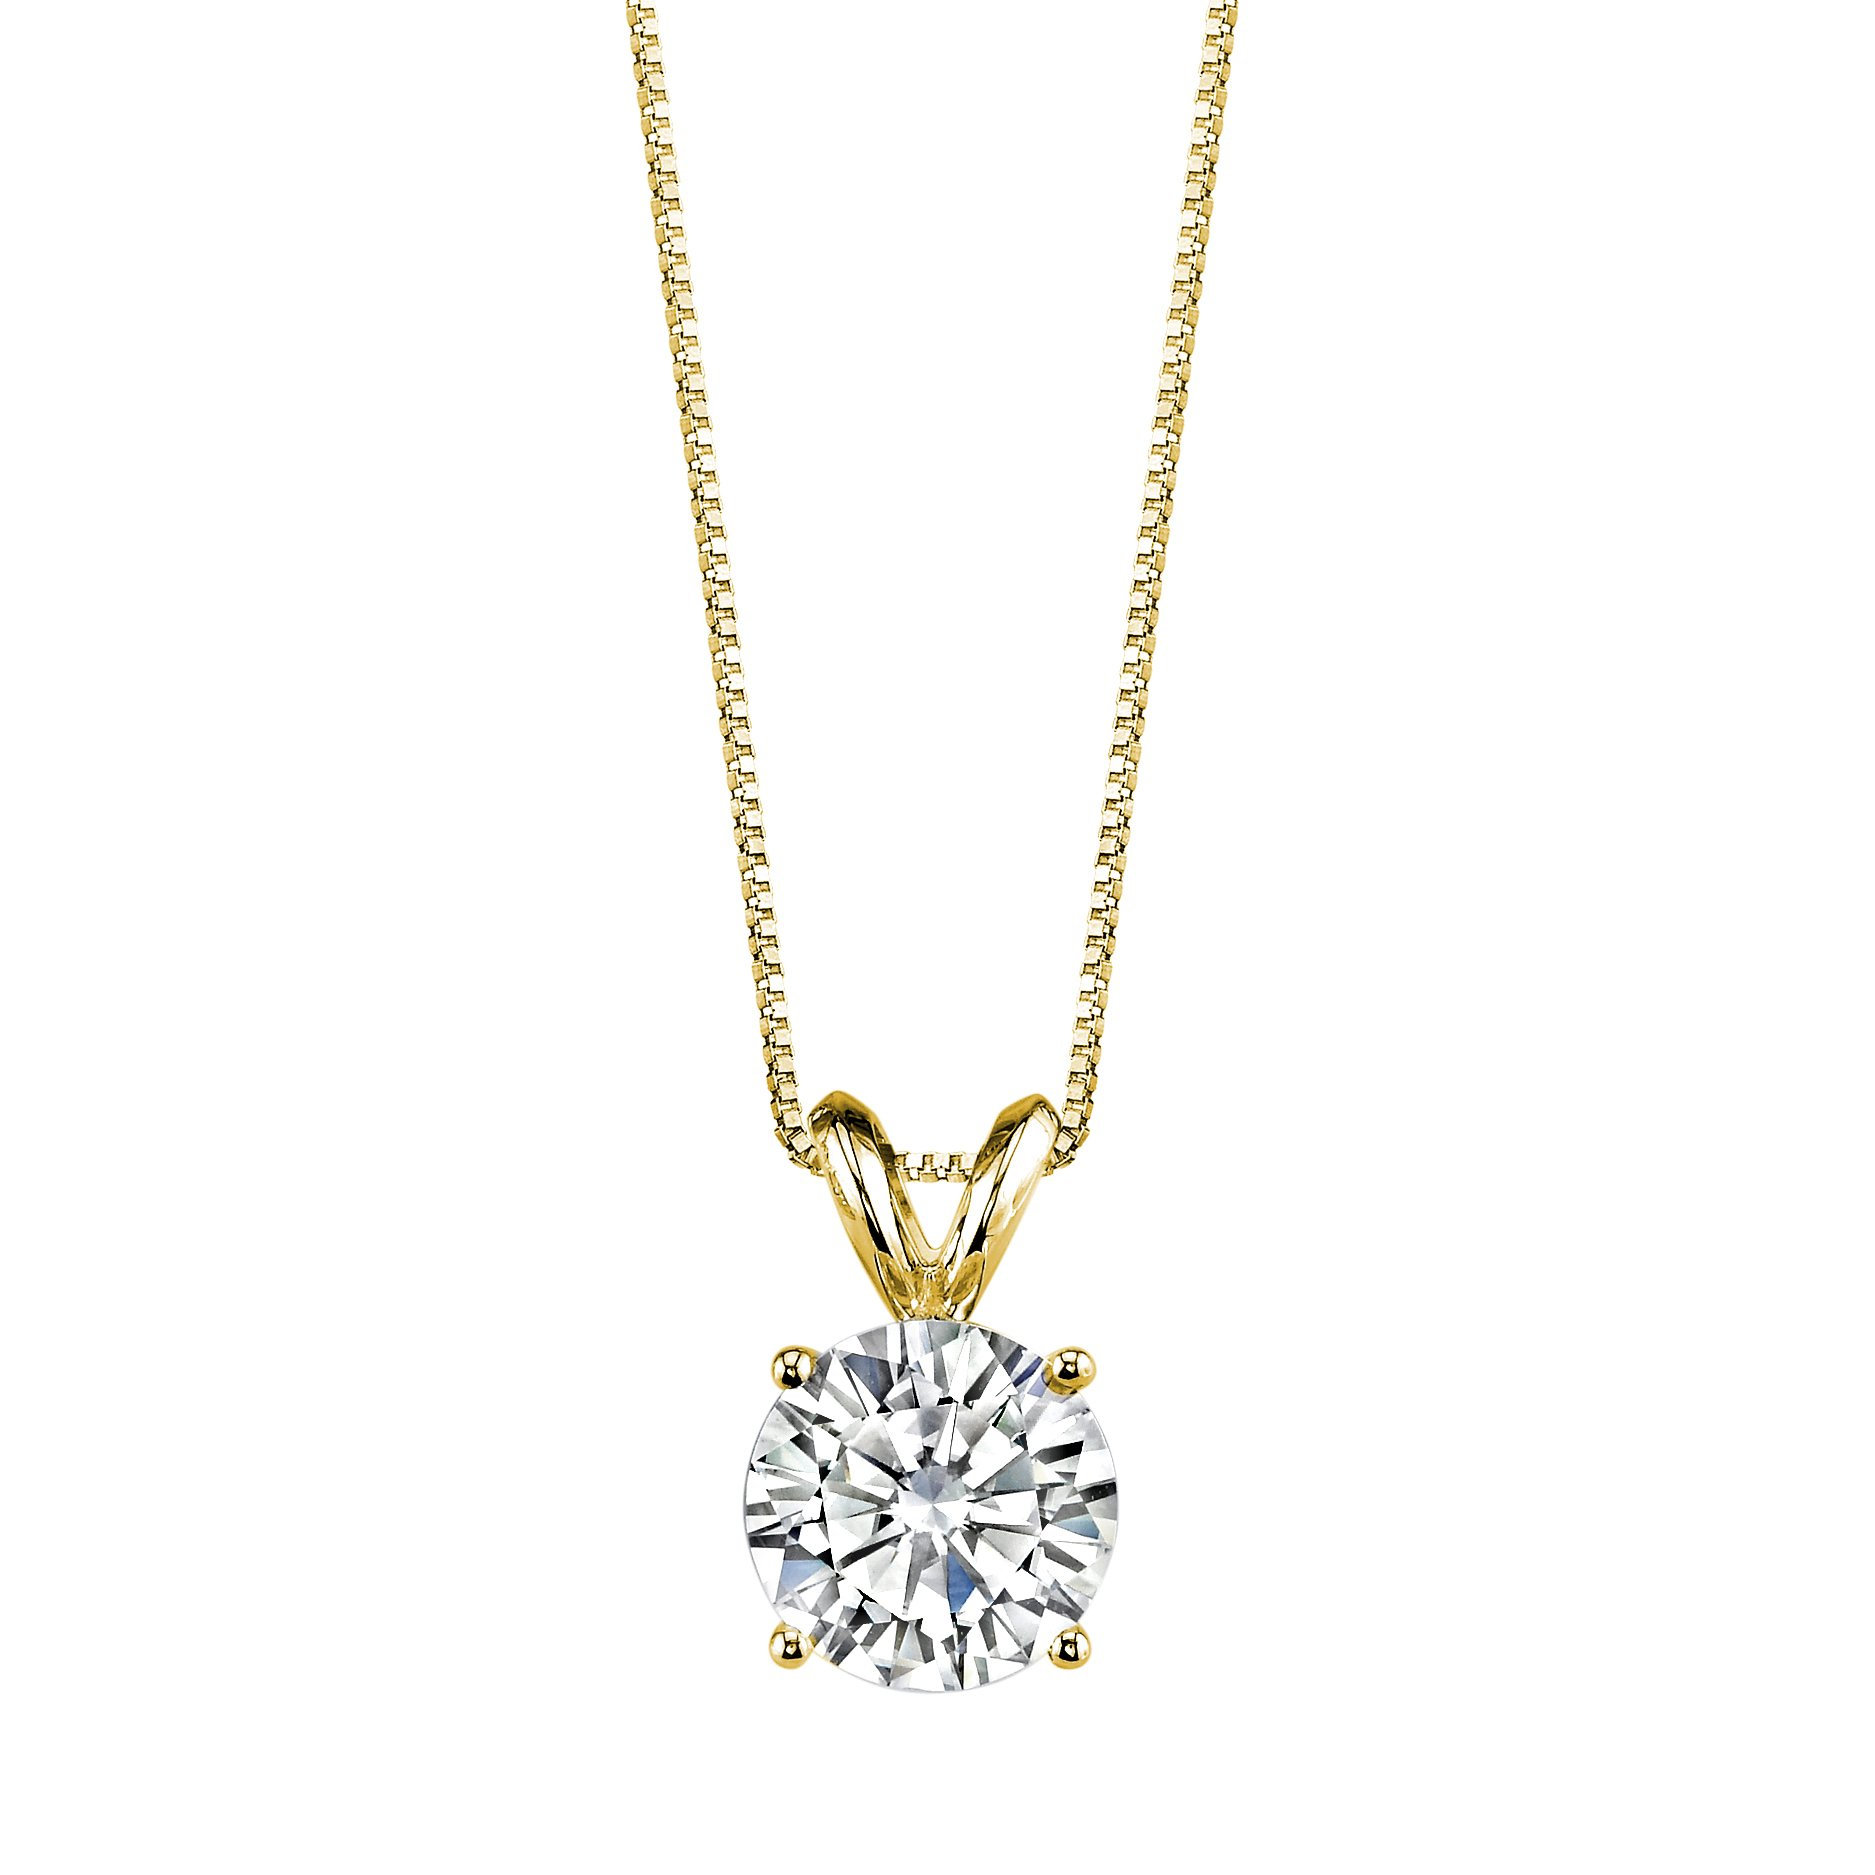 Forever Brilliant Round Cut 7.5mm Moissanite Pendant Necklace, 1.50ct DEW By Charles & Colvard by Charles & Colvard